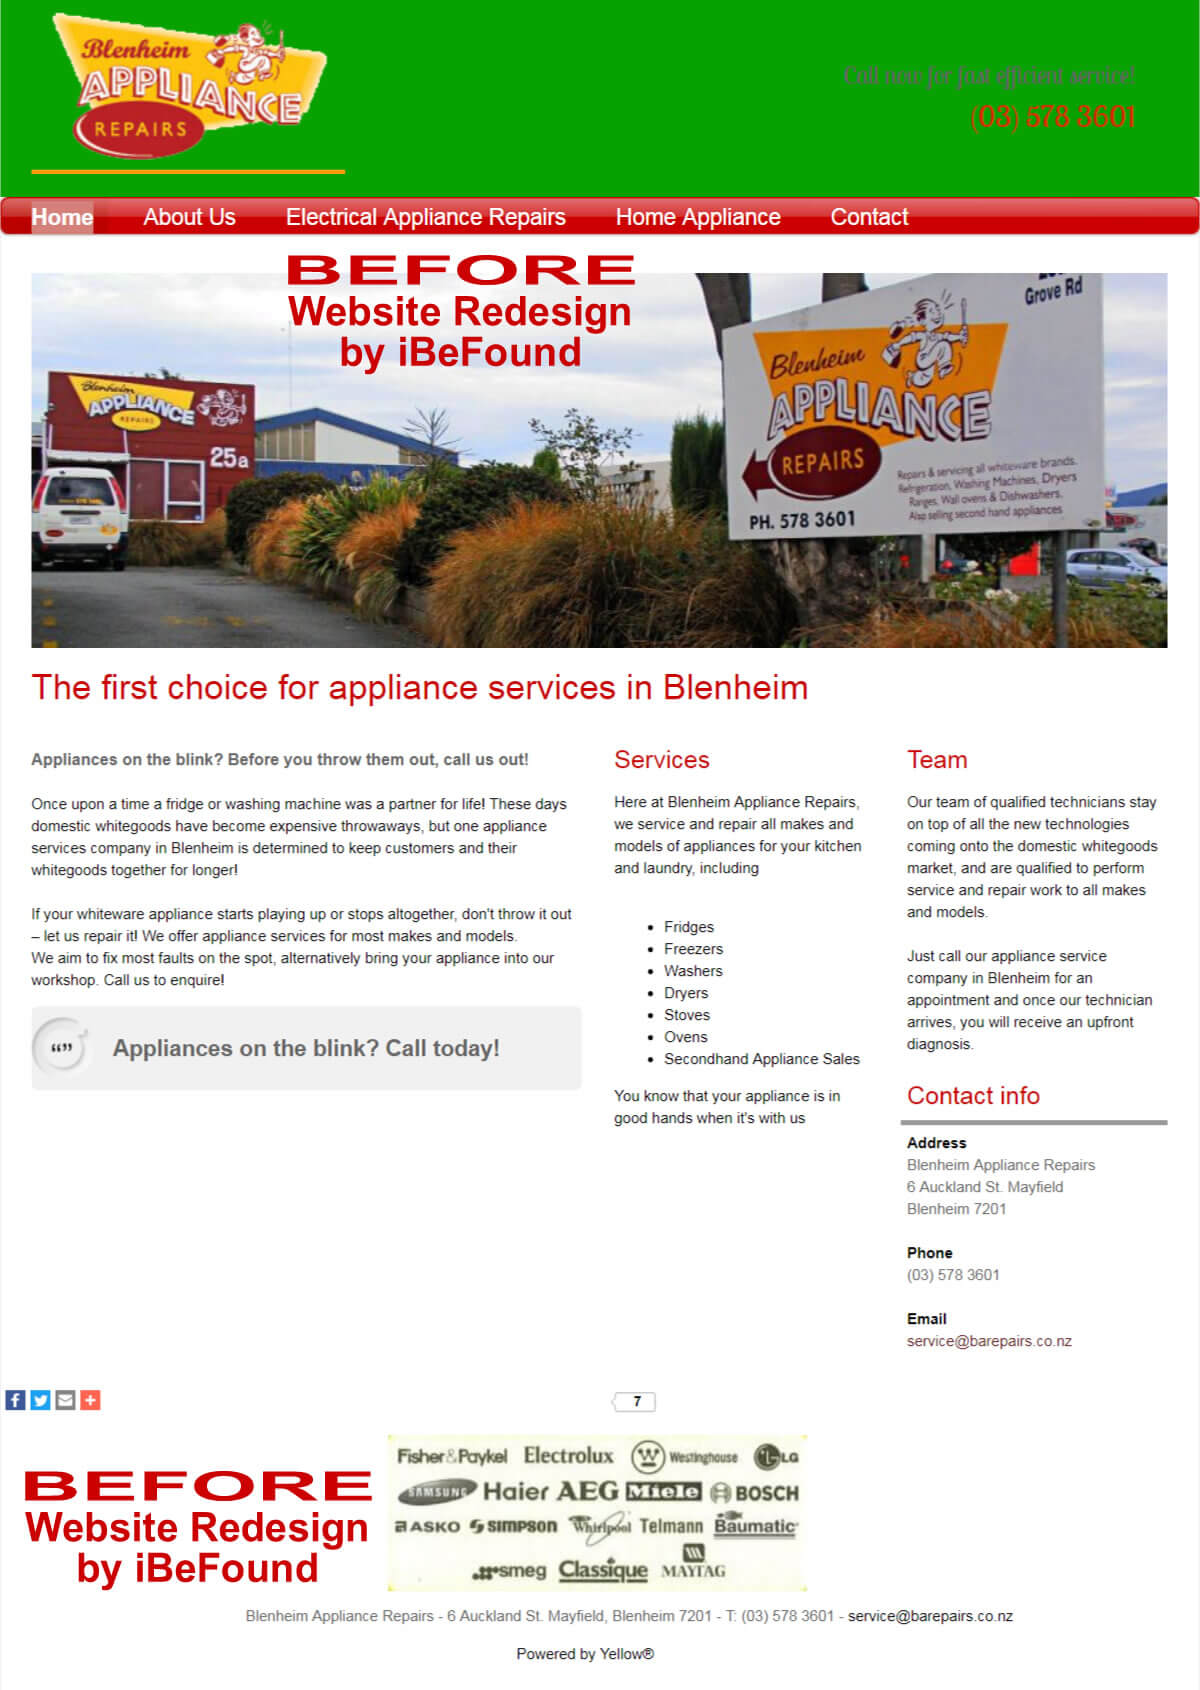 Homepage Of Blenheim Appliance Repairs Before Website Redesign By IBeFound